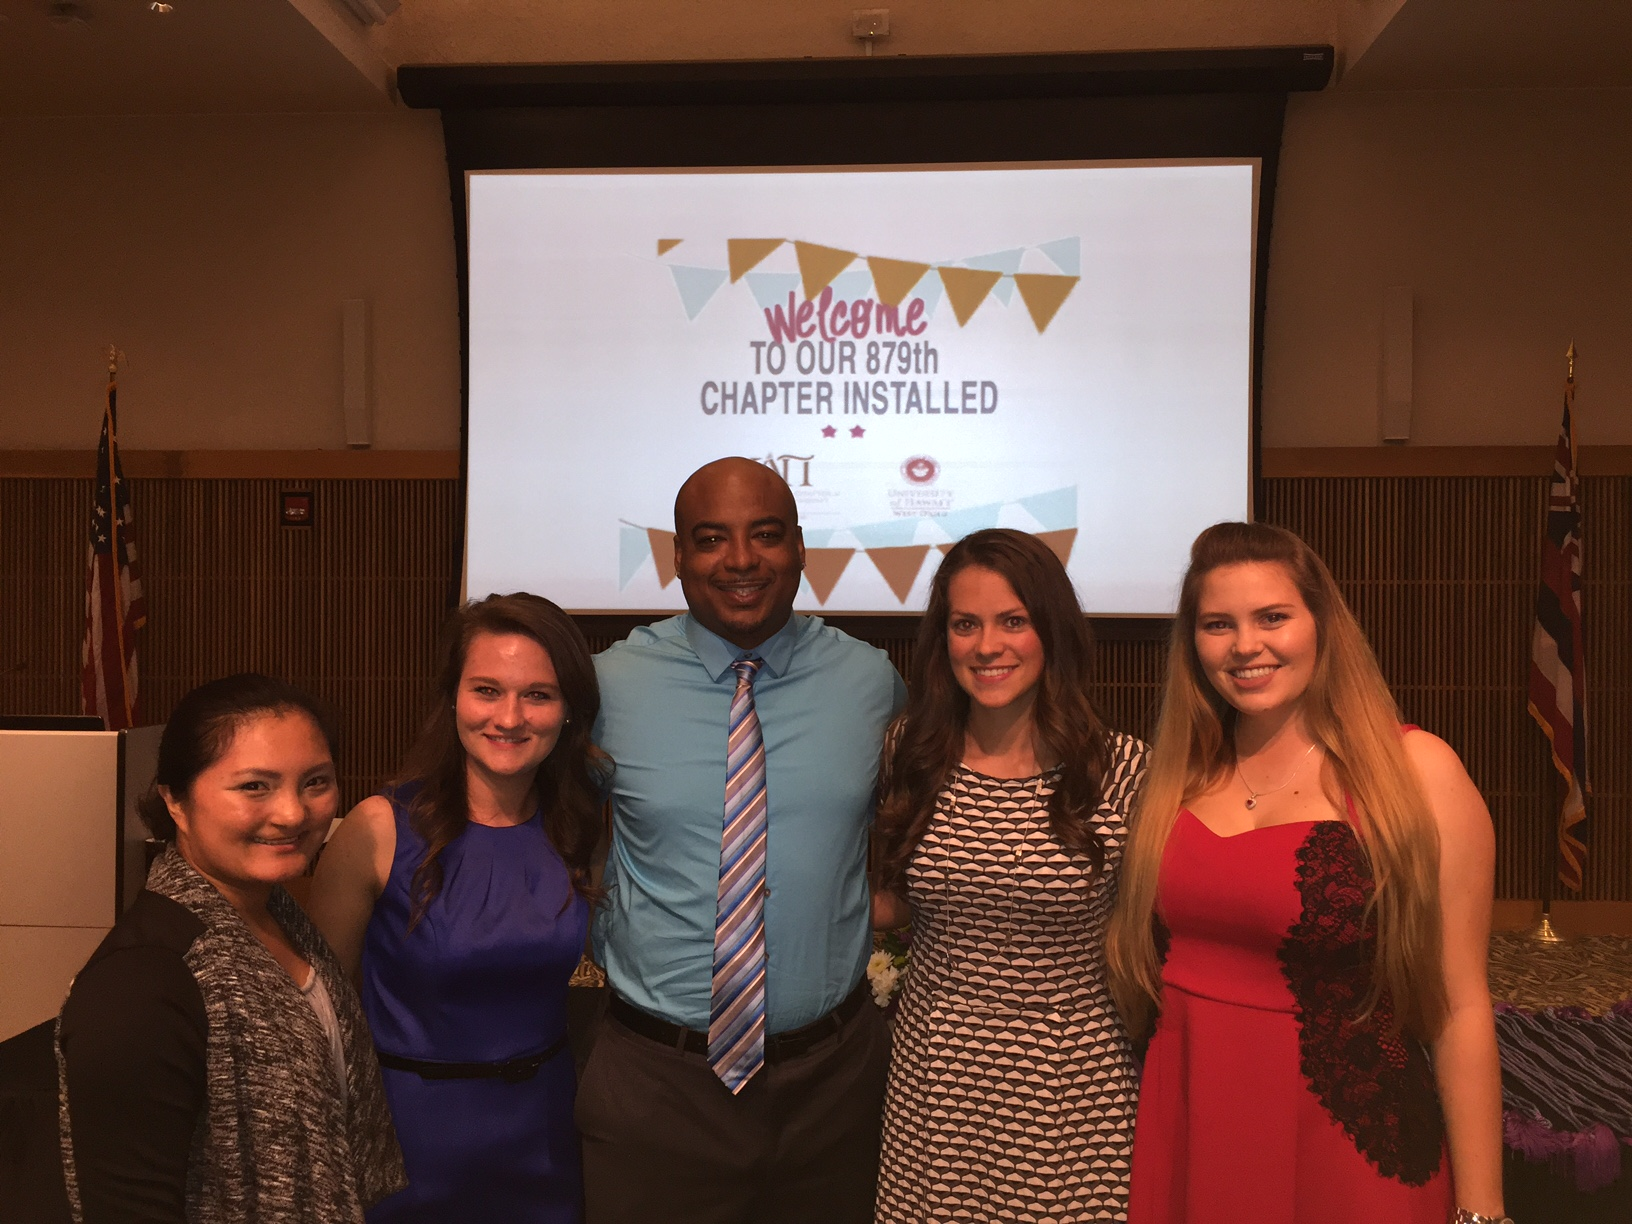 Officers of the 2016 Kappa Delta Pi class (from left: Gina Ramiscal, Haylie Culp, Adrian Hill, Elizabeth Soldner, and Elizabeth Gustafson).